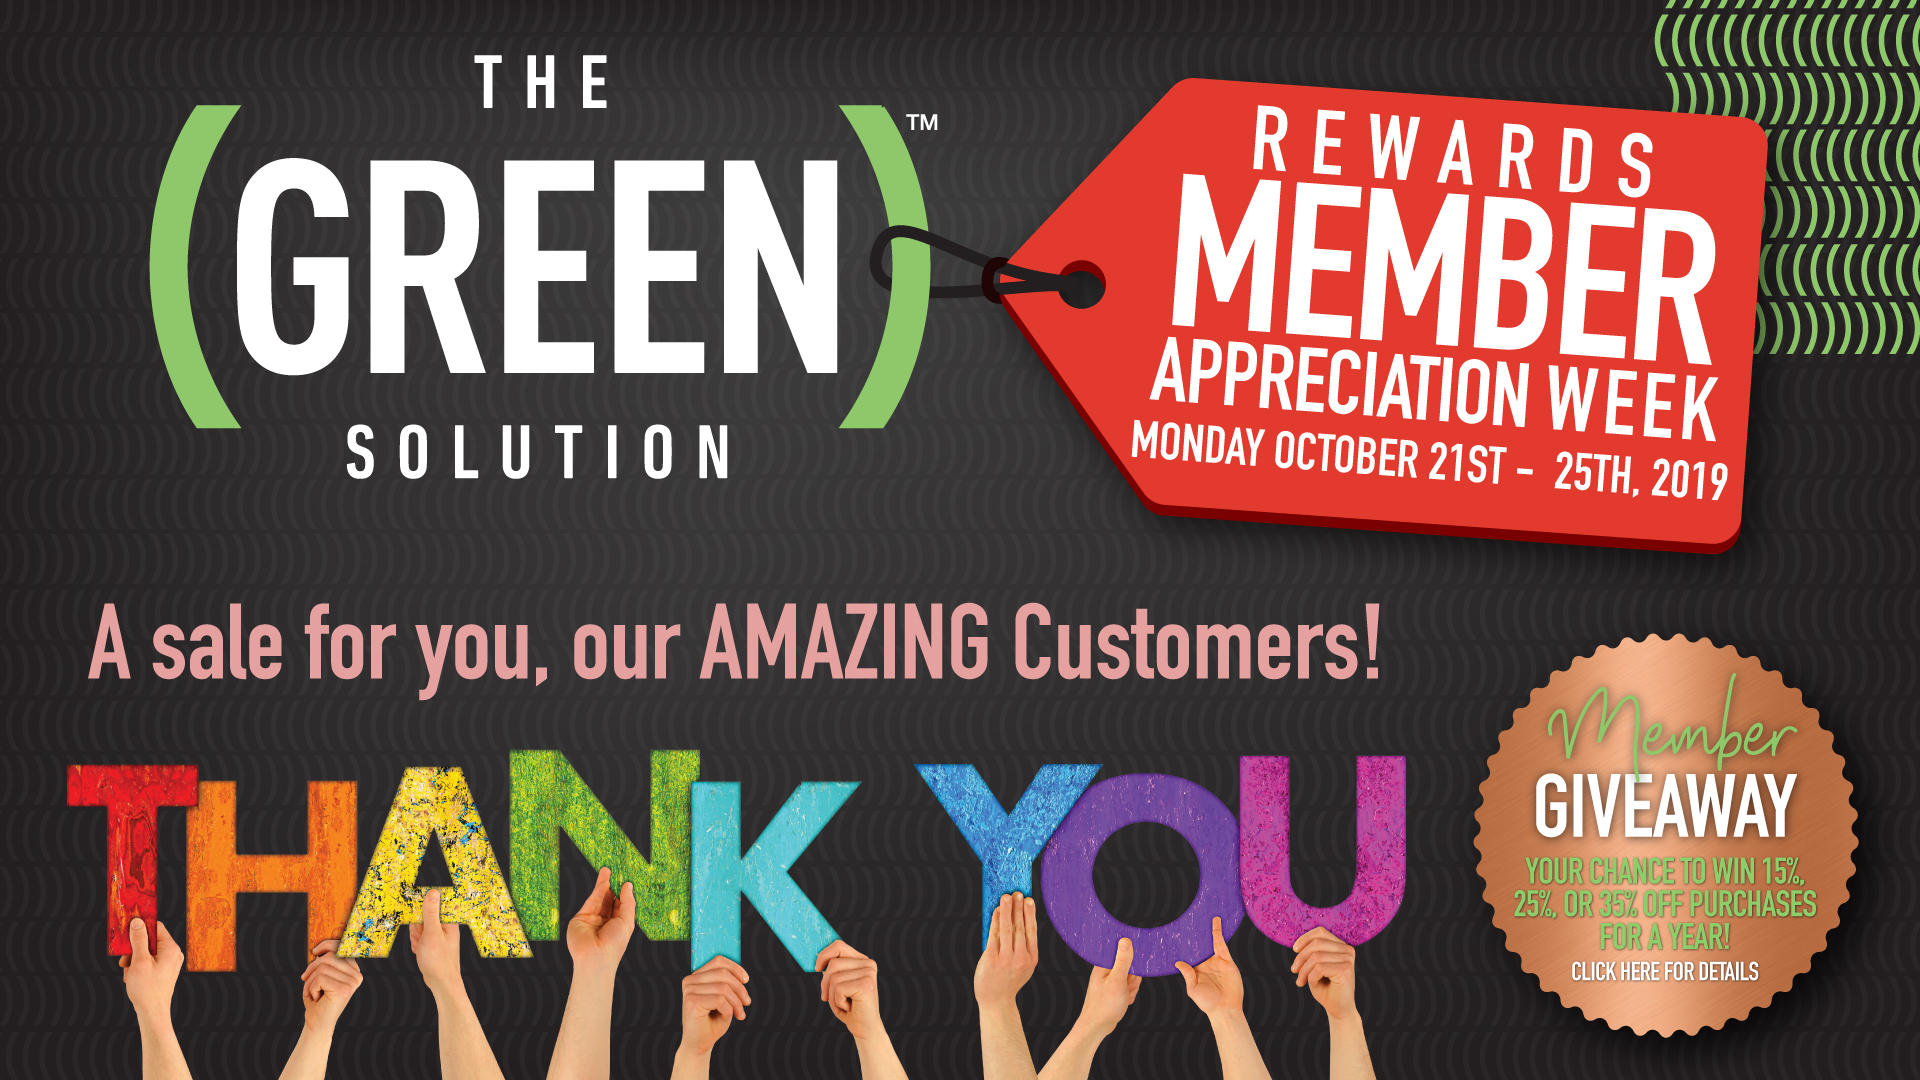 The Green Solution anniversary celebration - Oct 21-25, 2019!